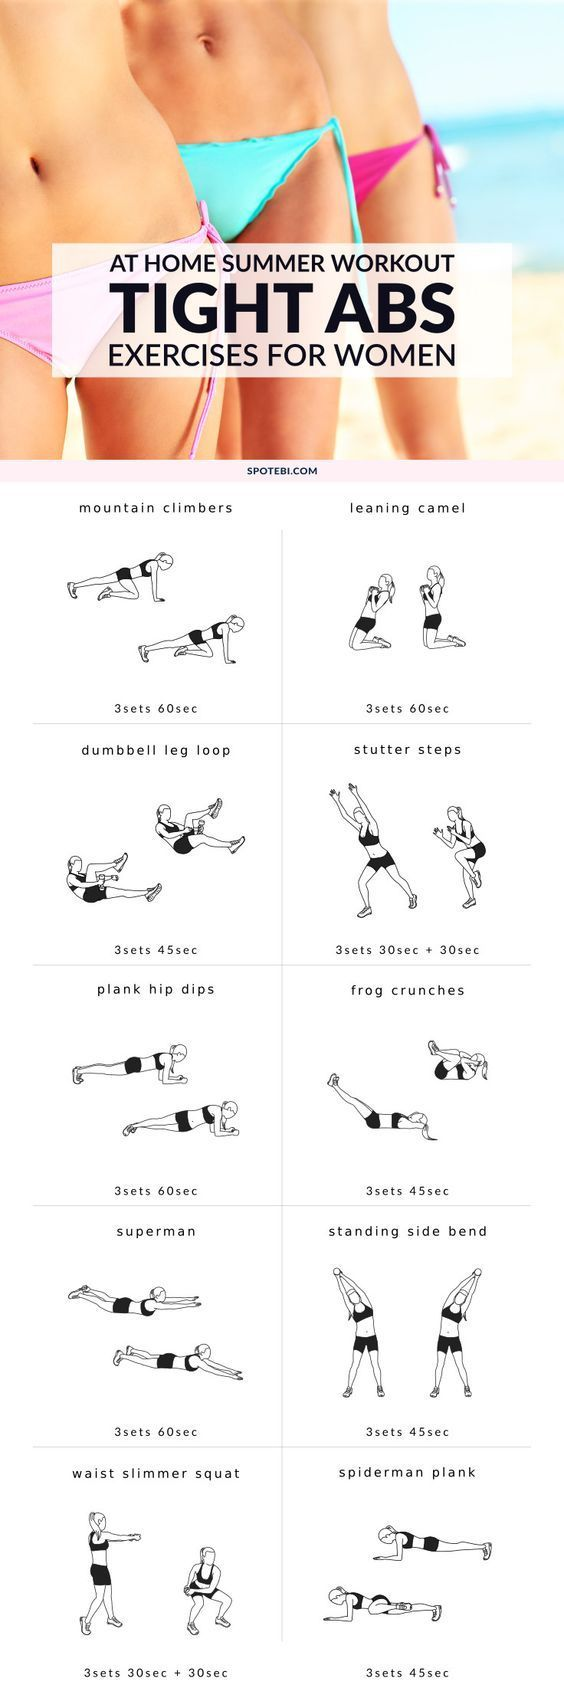 Get a flat, toned stomach and snap into shape with this bikini body tight tummy workout. 10 core-strengthening moves to help you sculpt sexy curves and say goodbye to shapewear for good. Slim, strong tummy here we come! http://www.spotebi.com/workout-routines/bikini-body-tight-tummy-workout/